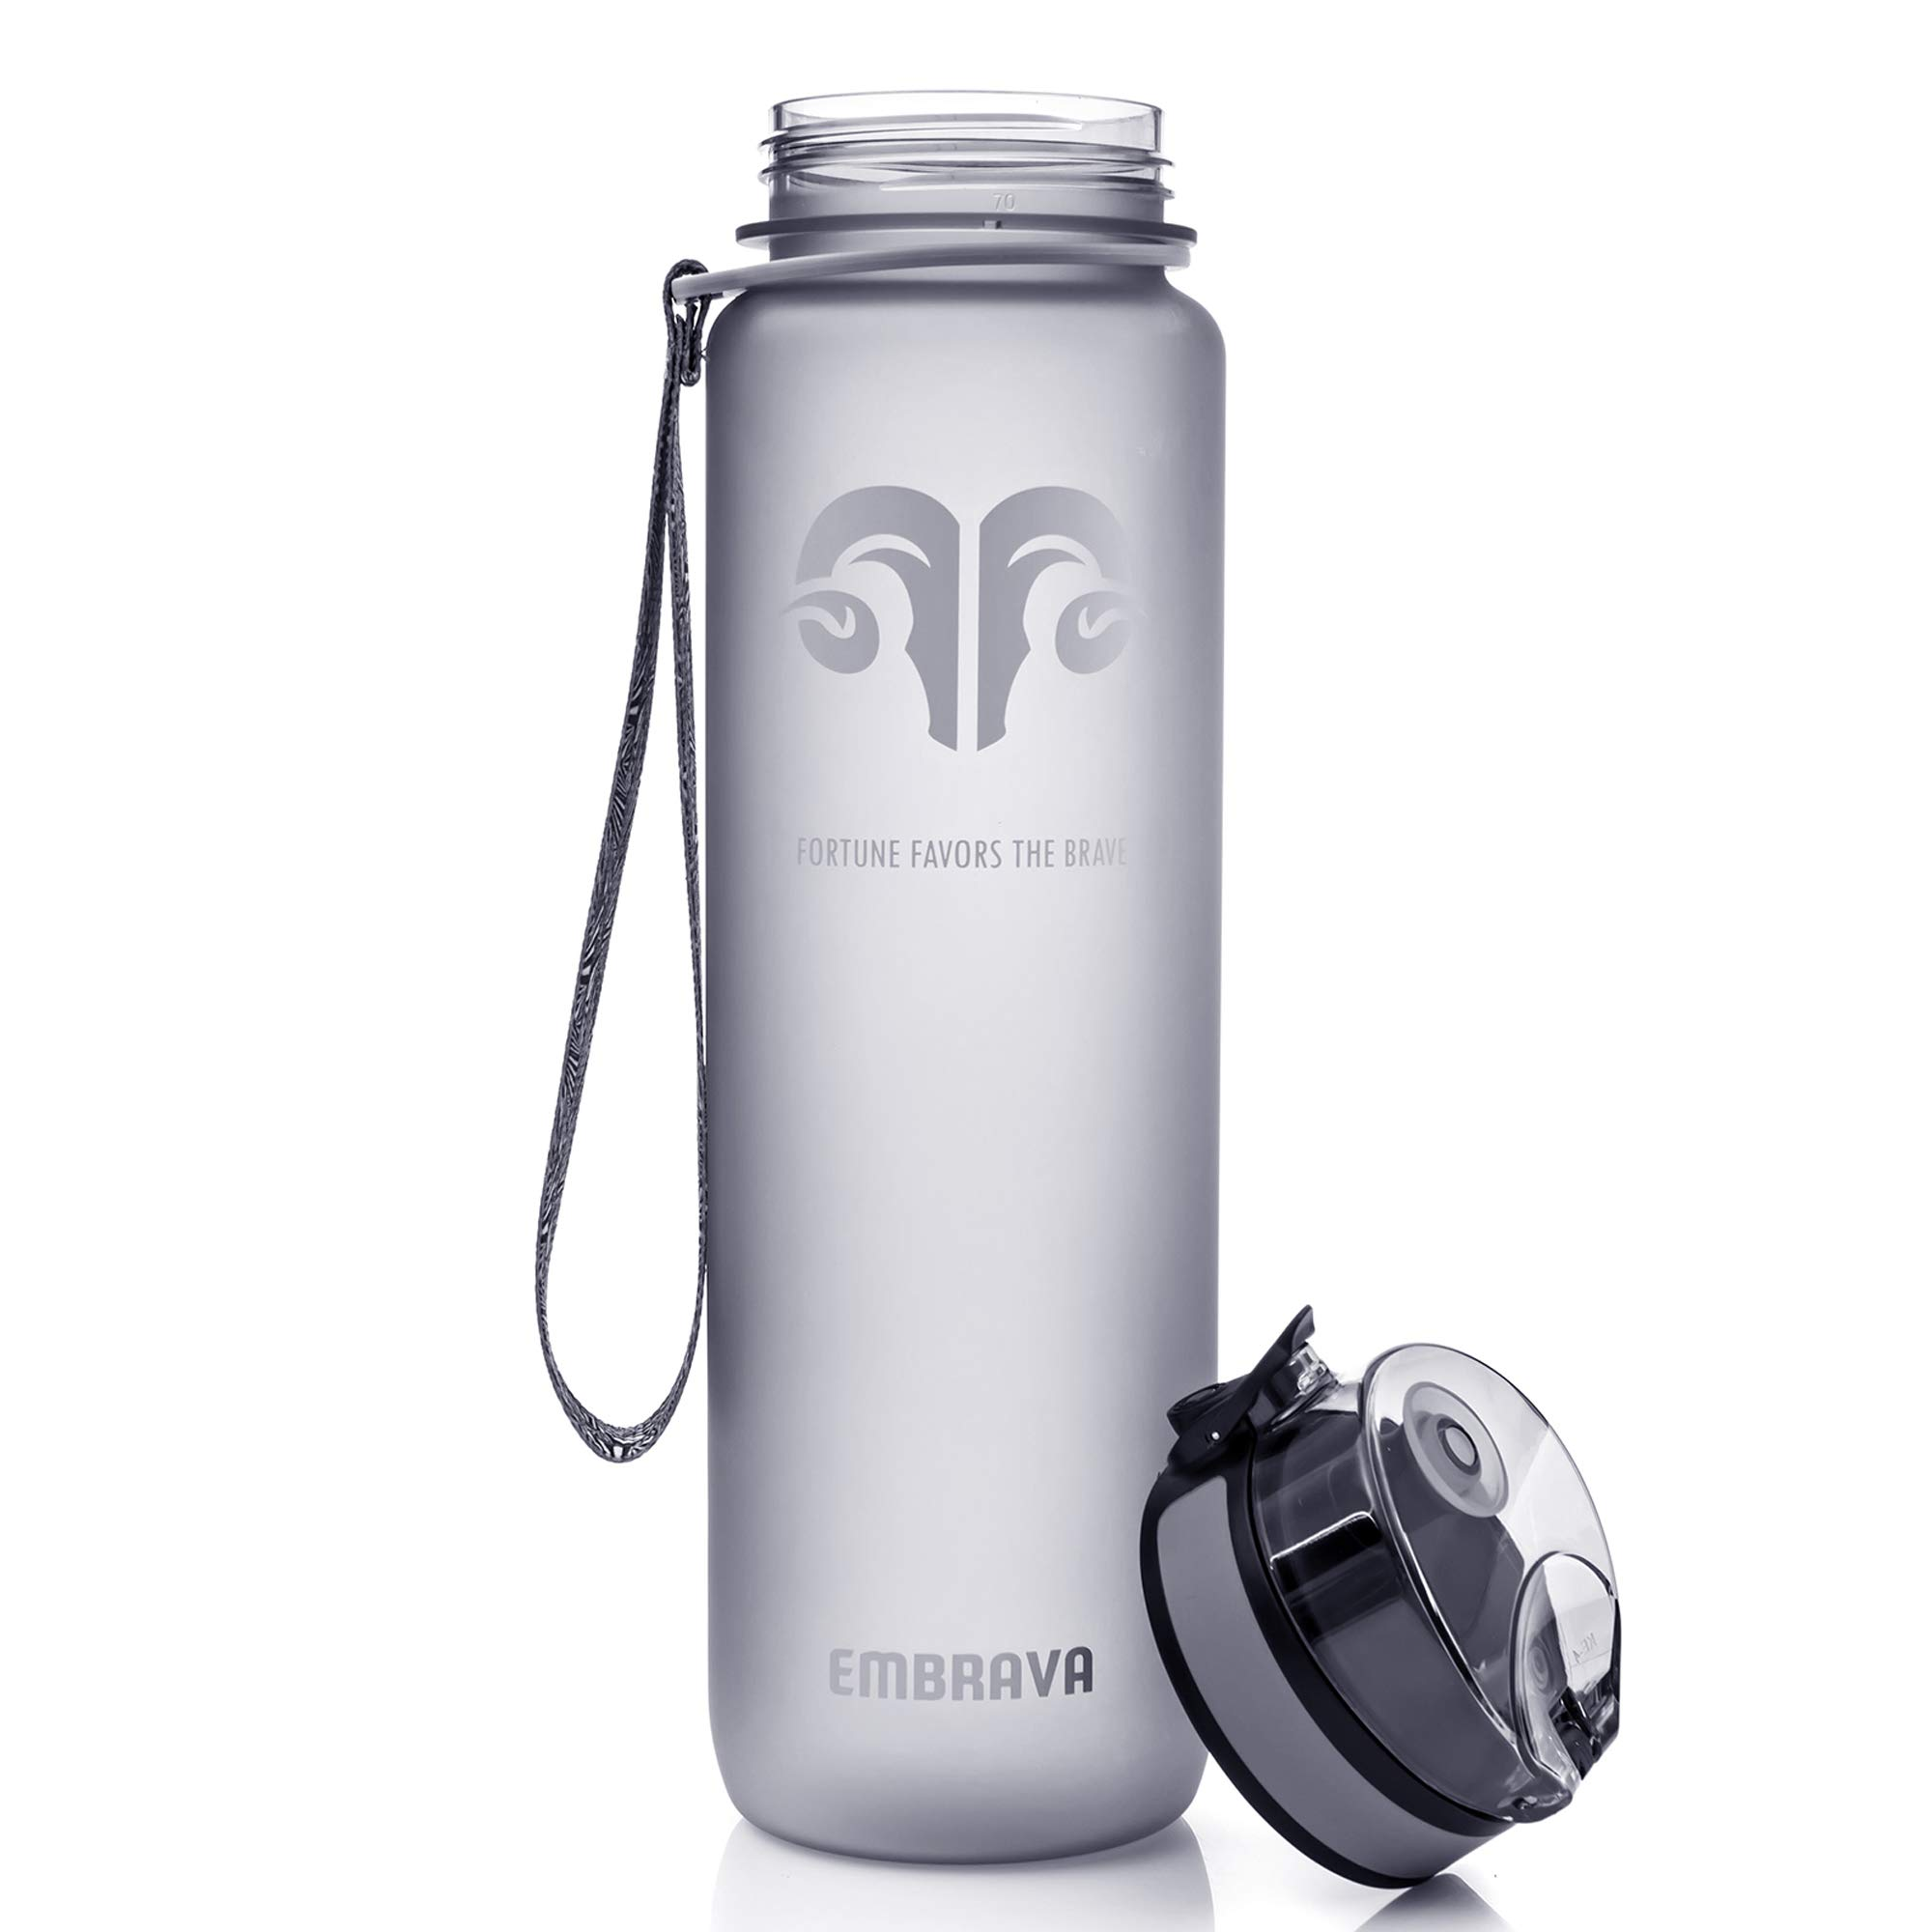 fa5f4ee74a Best Sports Water Bottle - 18oz Small - Eco Friendly & BPA-Free ...